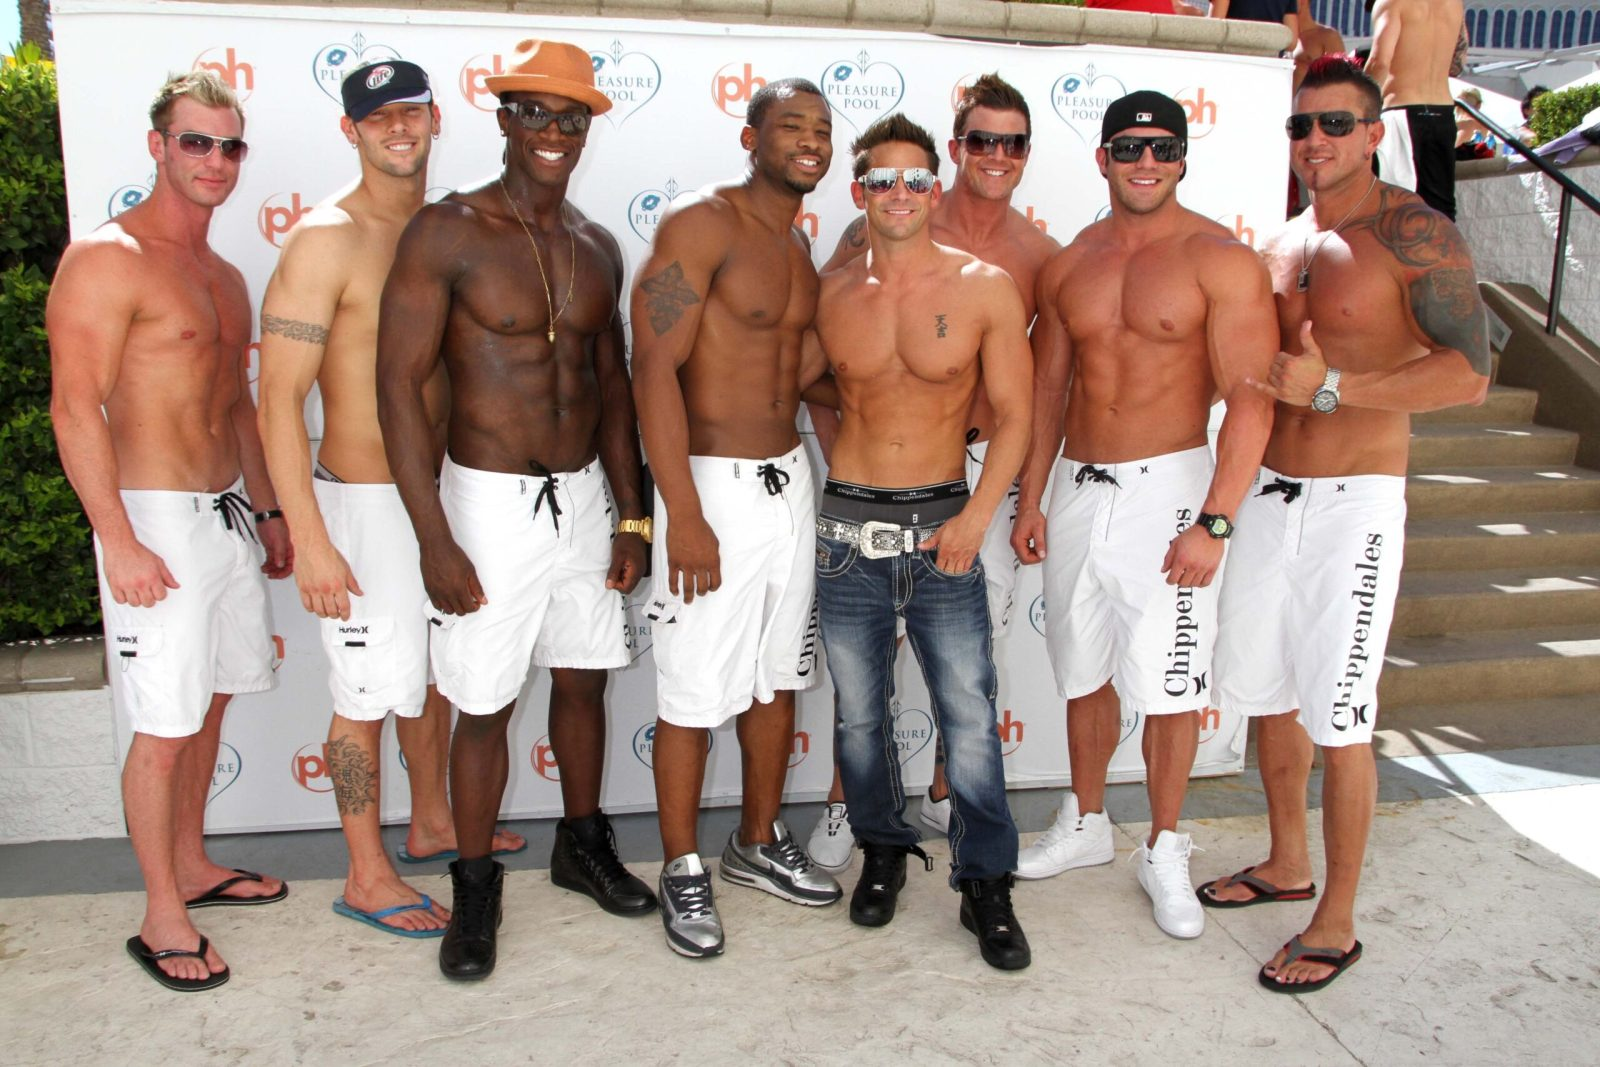 Jeff Timmons and the Chippendales Host the 'Pleasure Pool Bikini Contest'